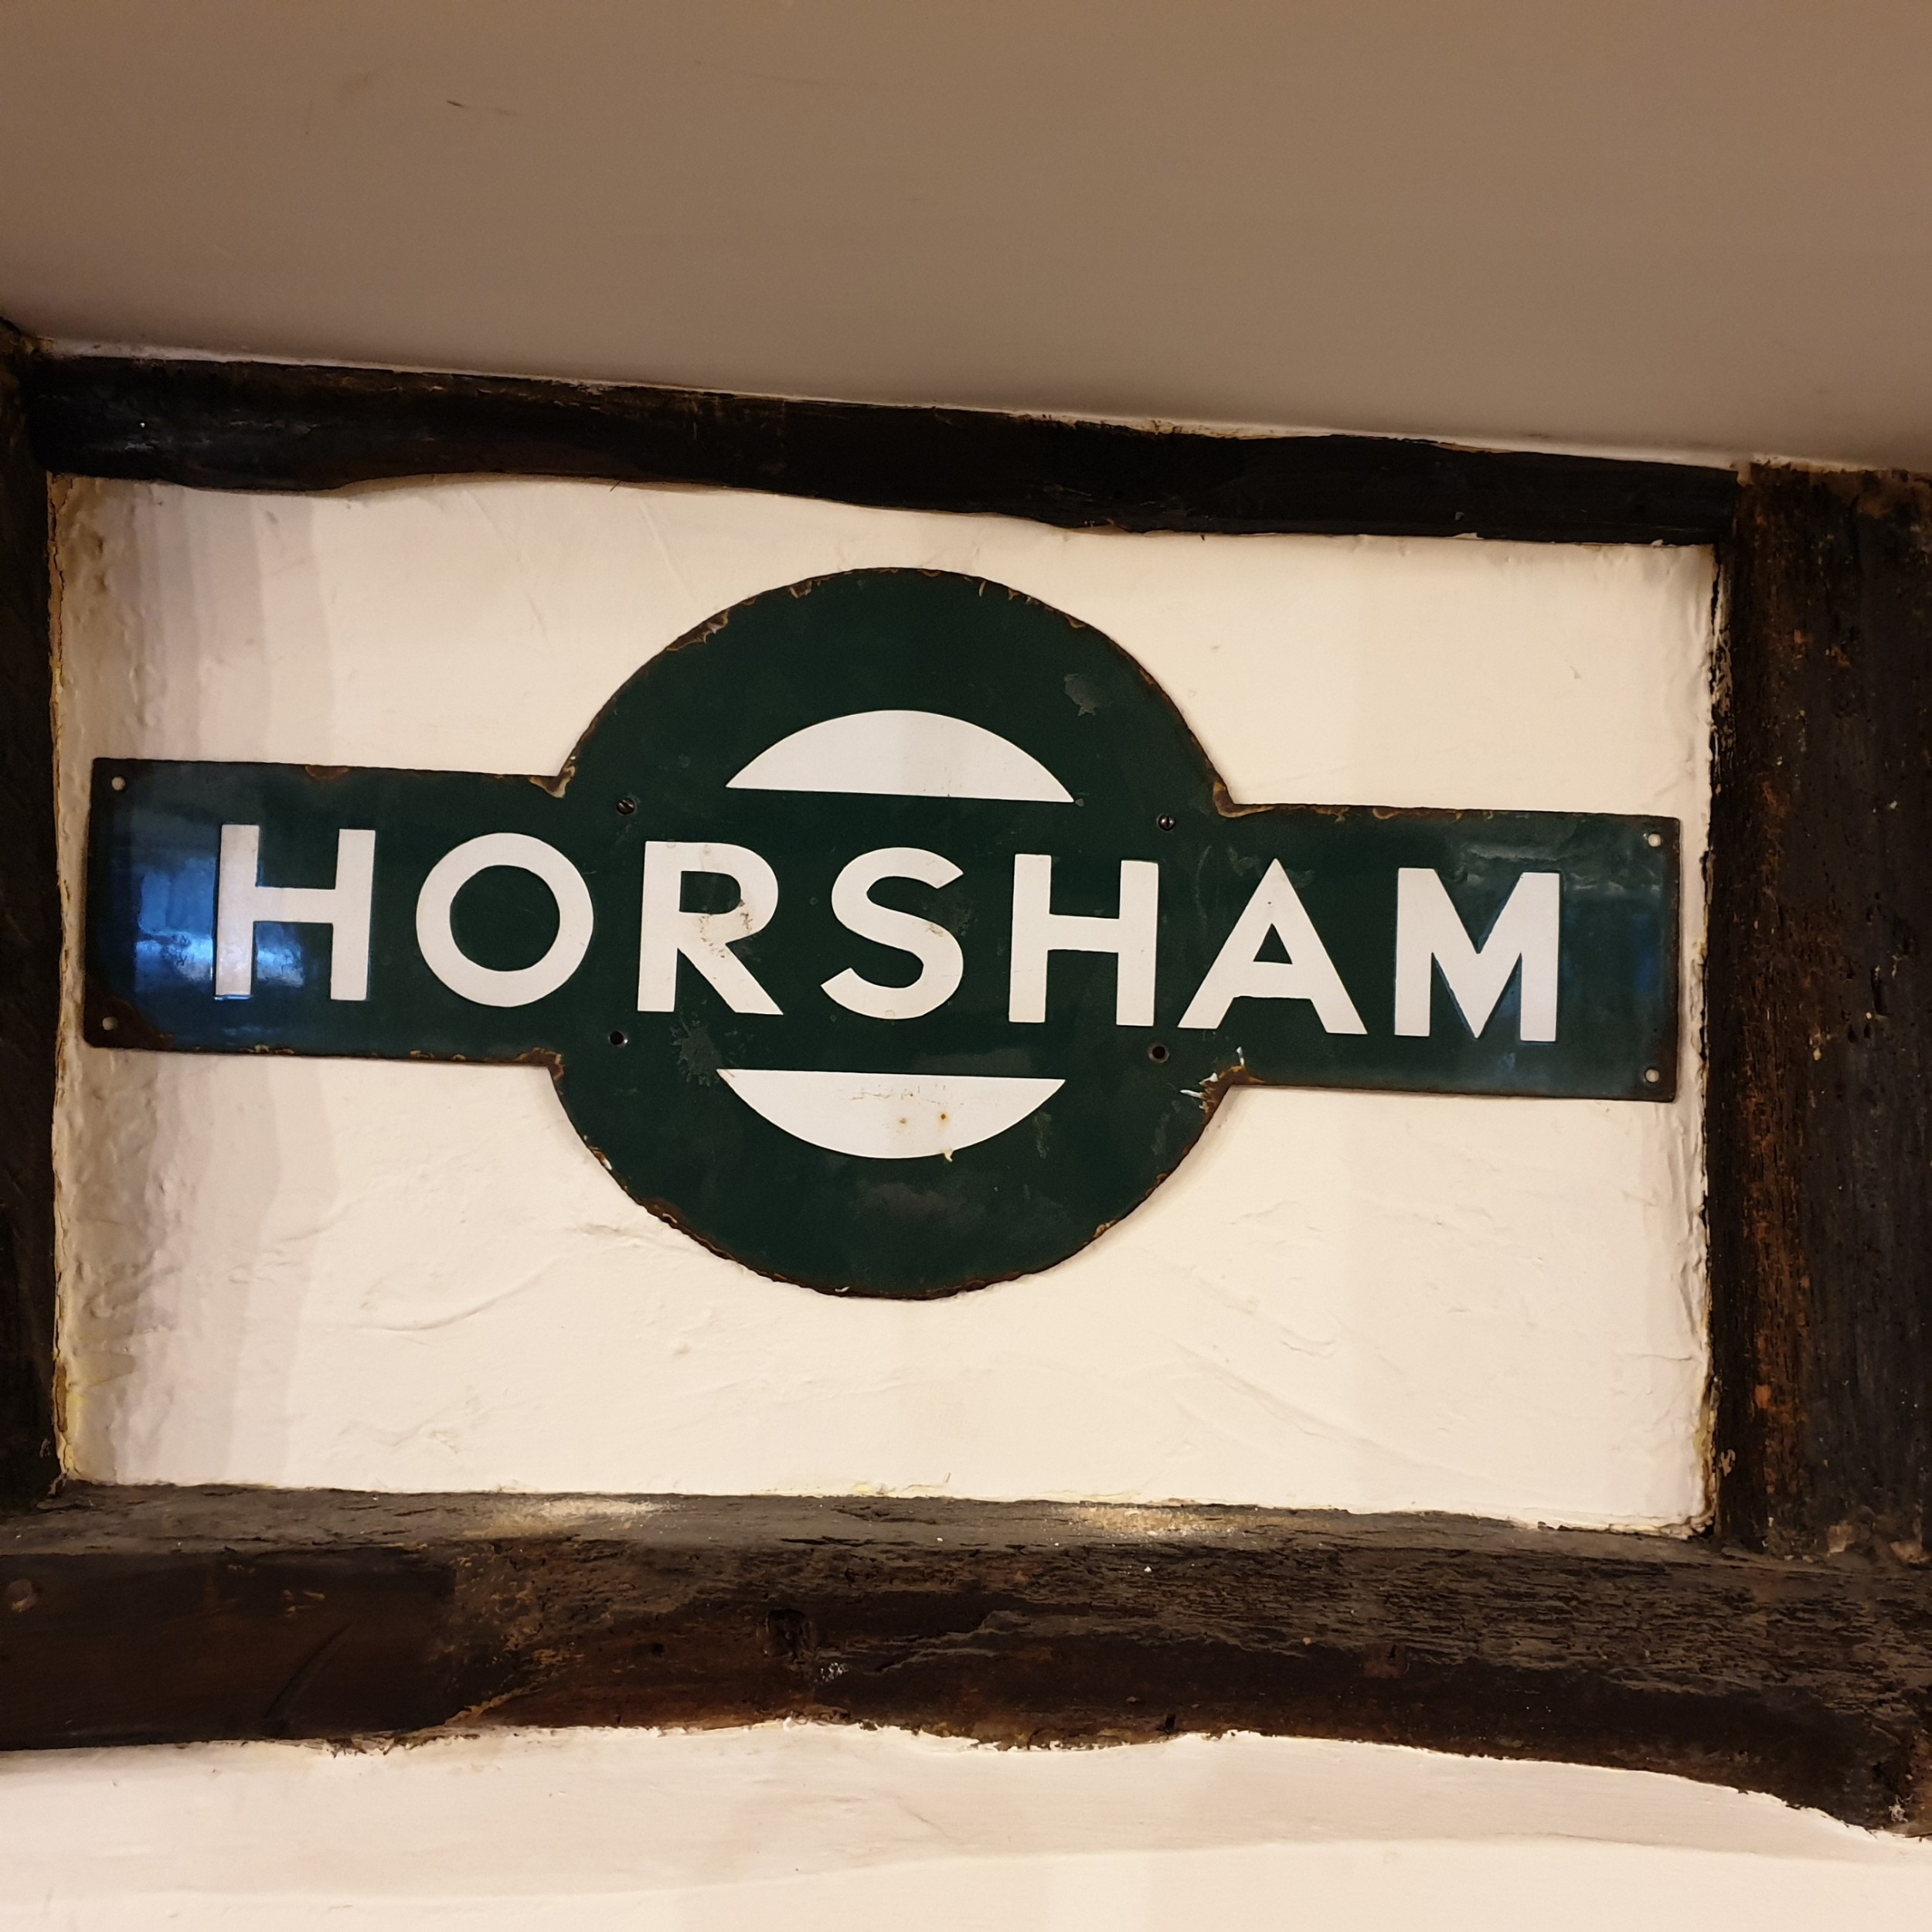 enamel target station sign for 'horsham' formerly part of the london brighton south coast railway